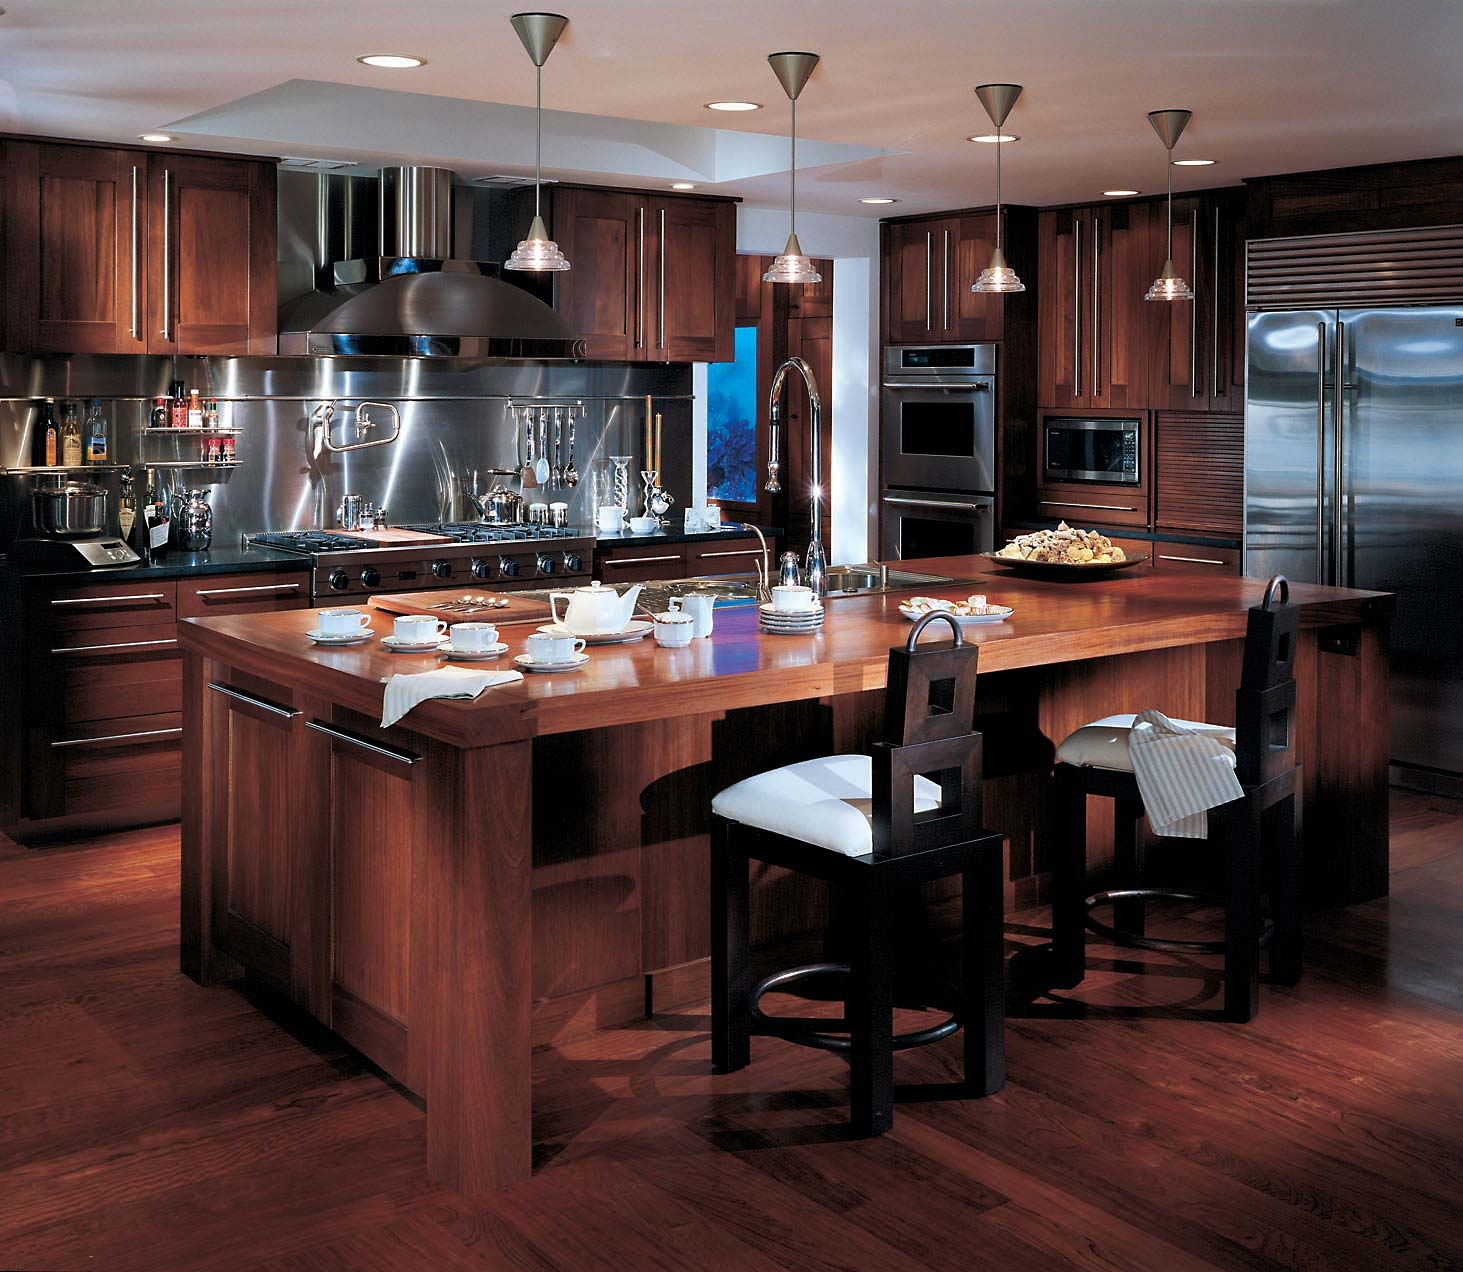 Heritage | USA | Kitchens and Baths manufacturer